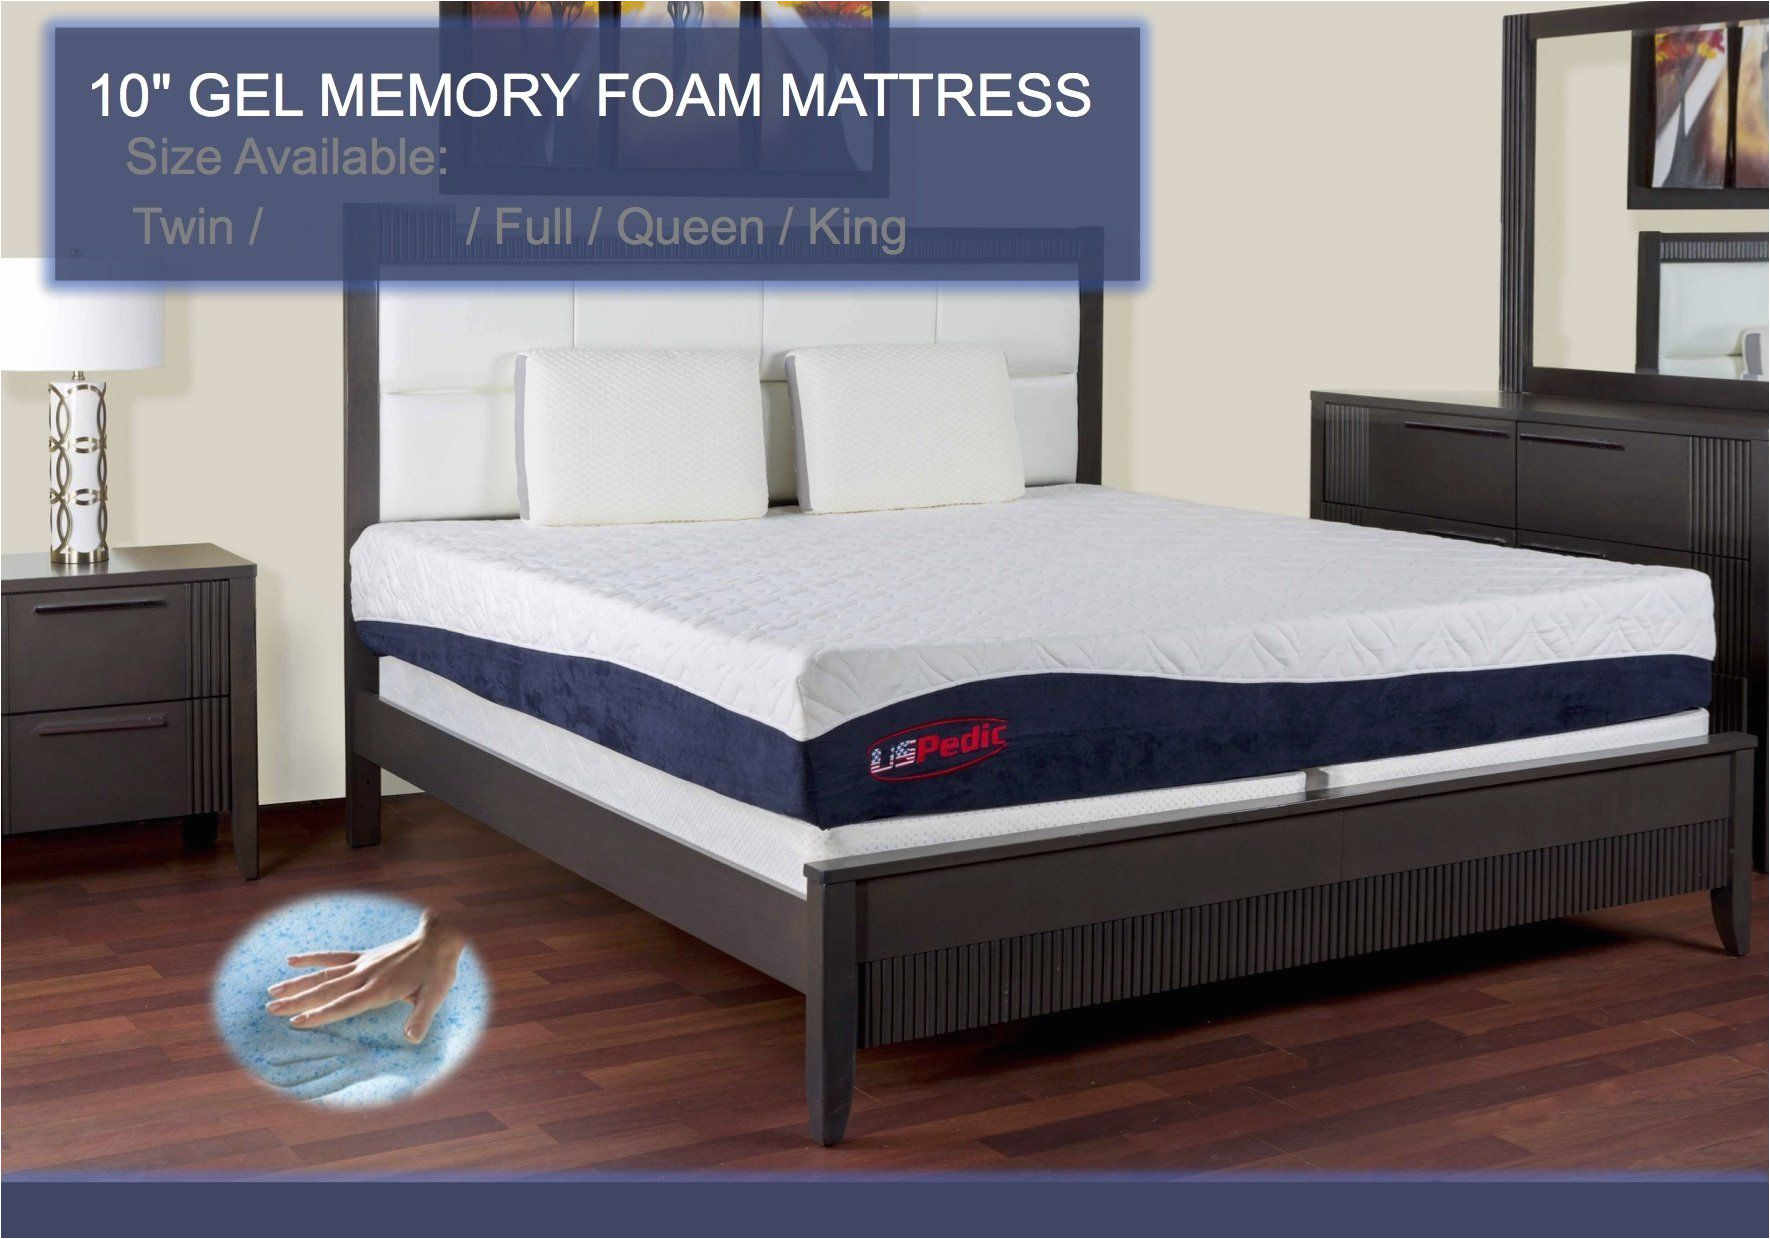 uspedic queen mattress gel infused memory foam takes the shape of your body relaxed sleep 10